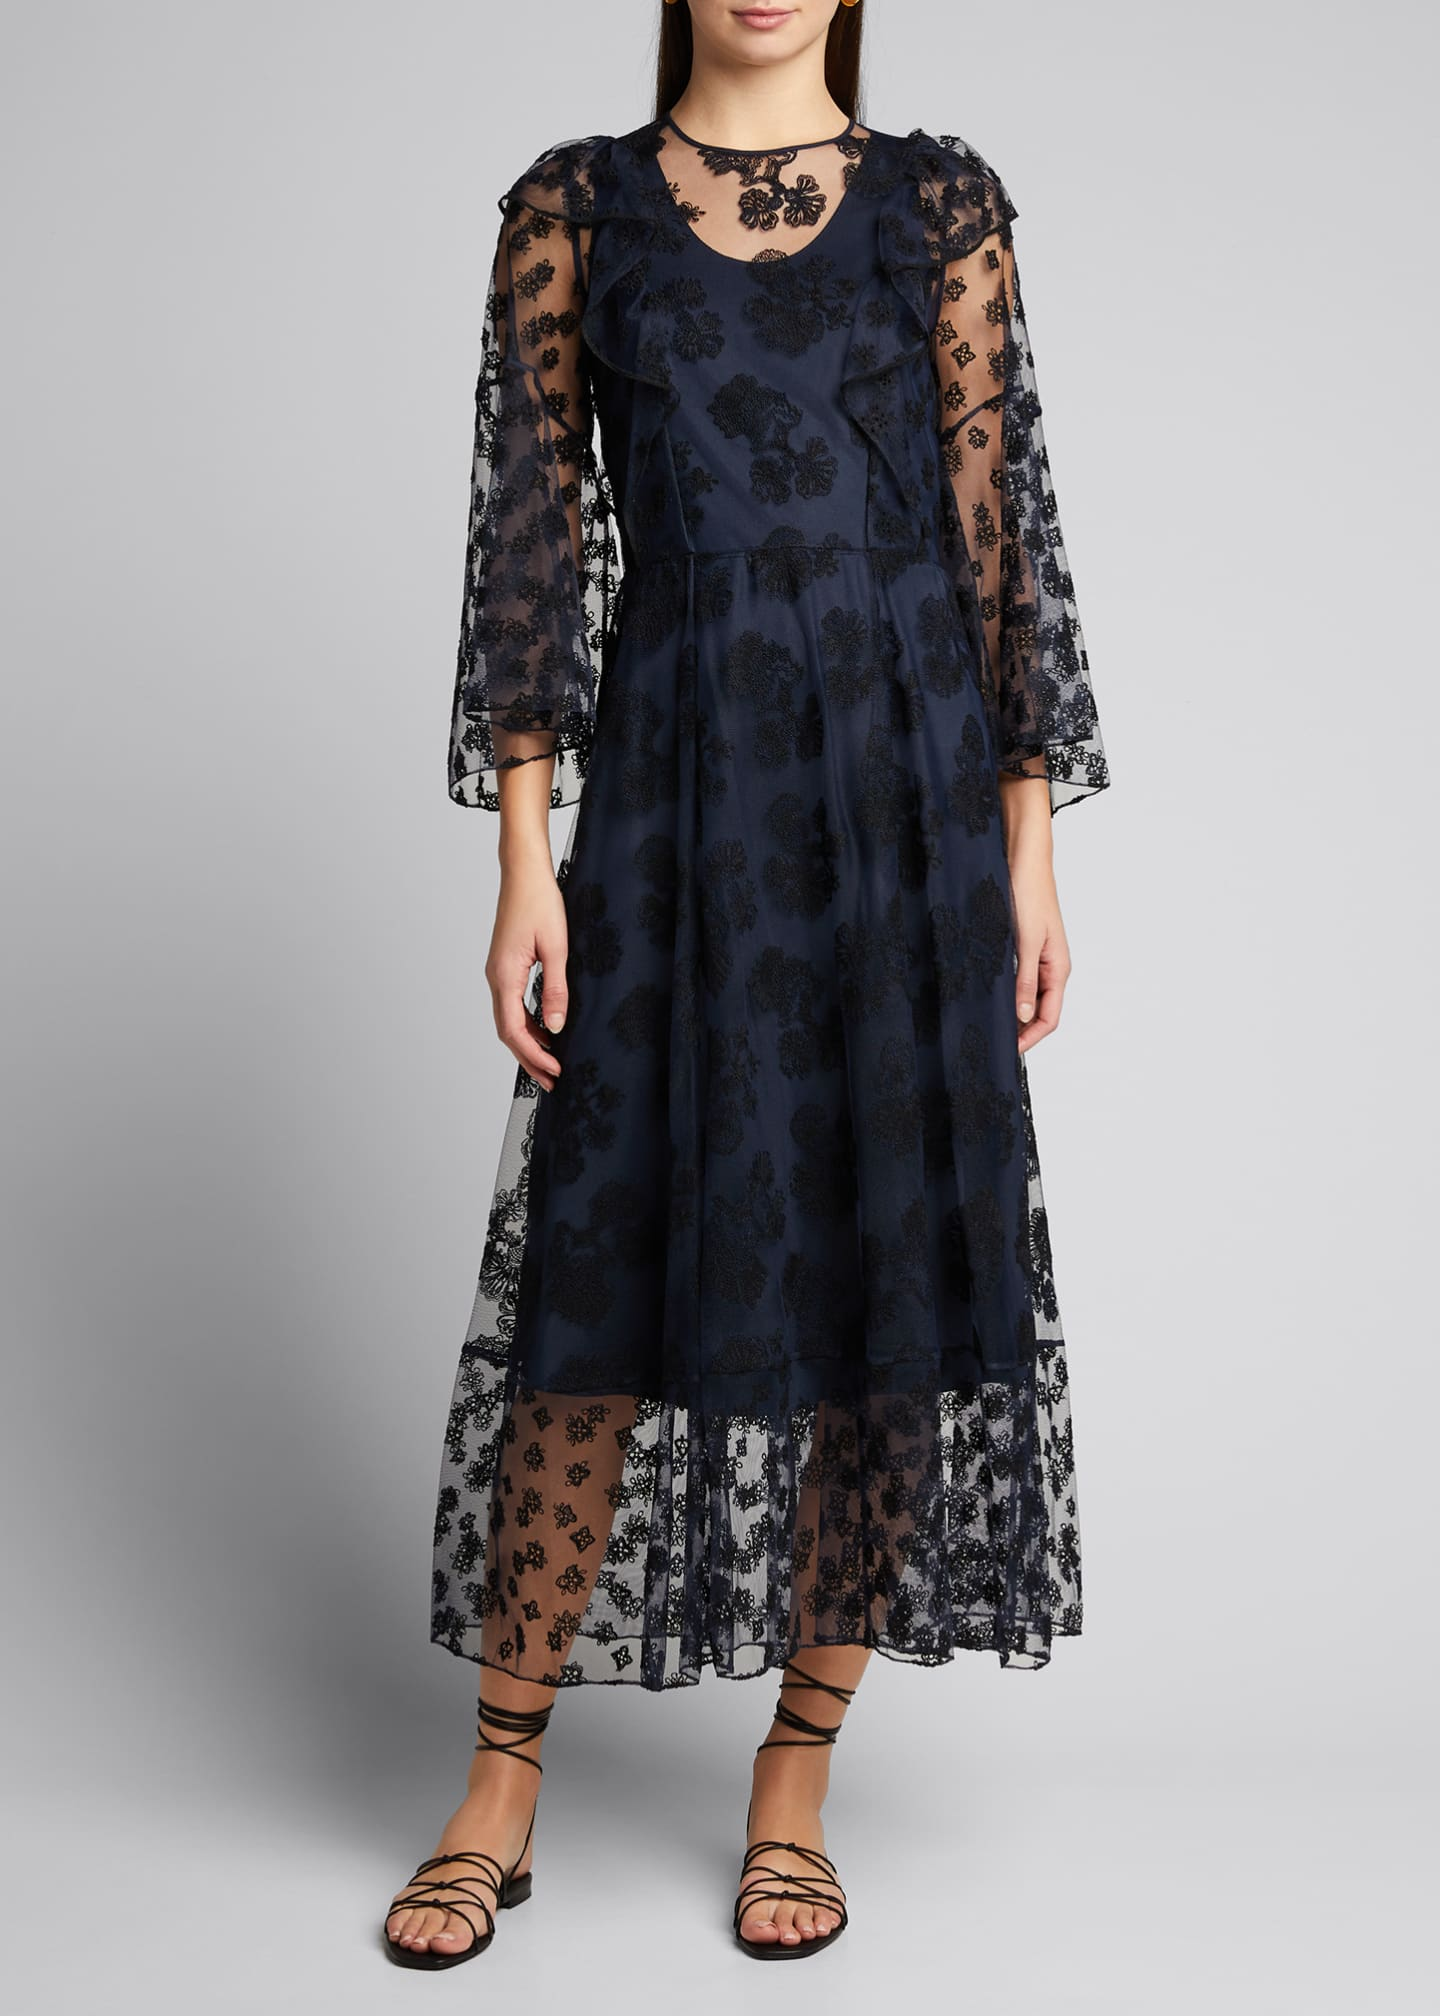 Chloe Embroidered Tulle Asymmetric Dress